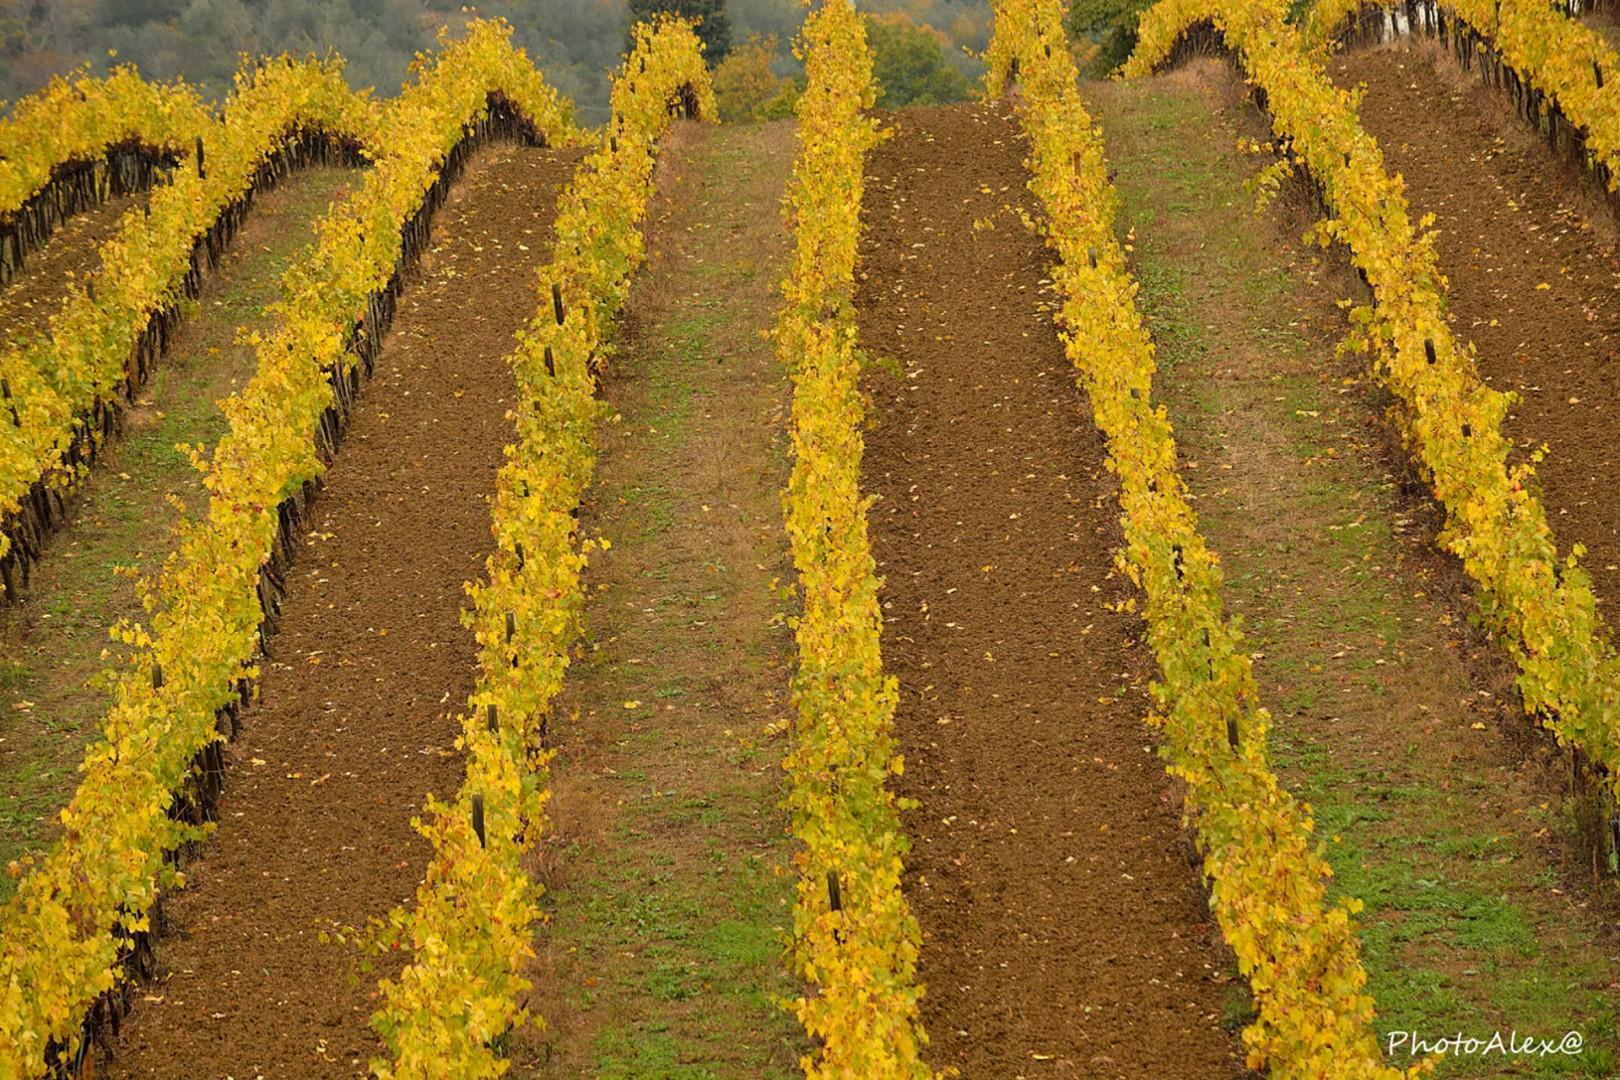 Fall is a wonderful time to visit, when the leaves turn golden in the surrounding vineyards.